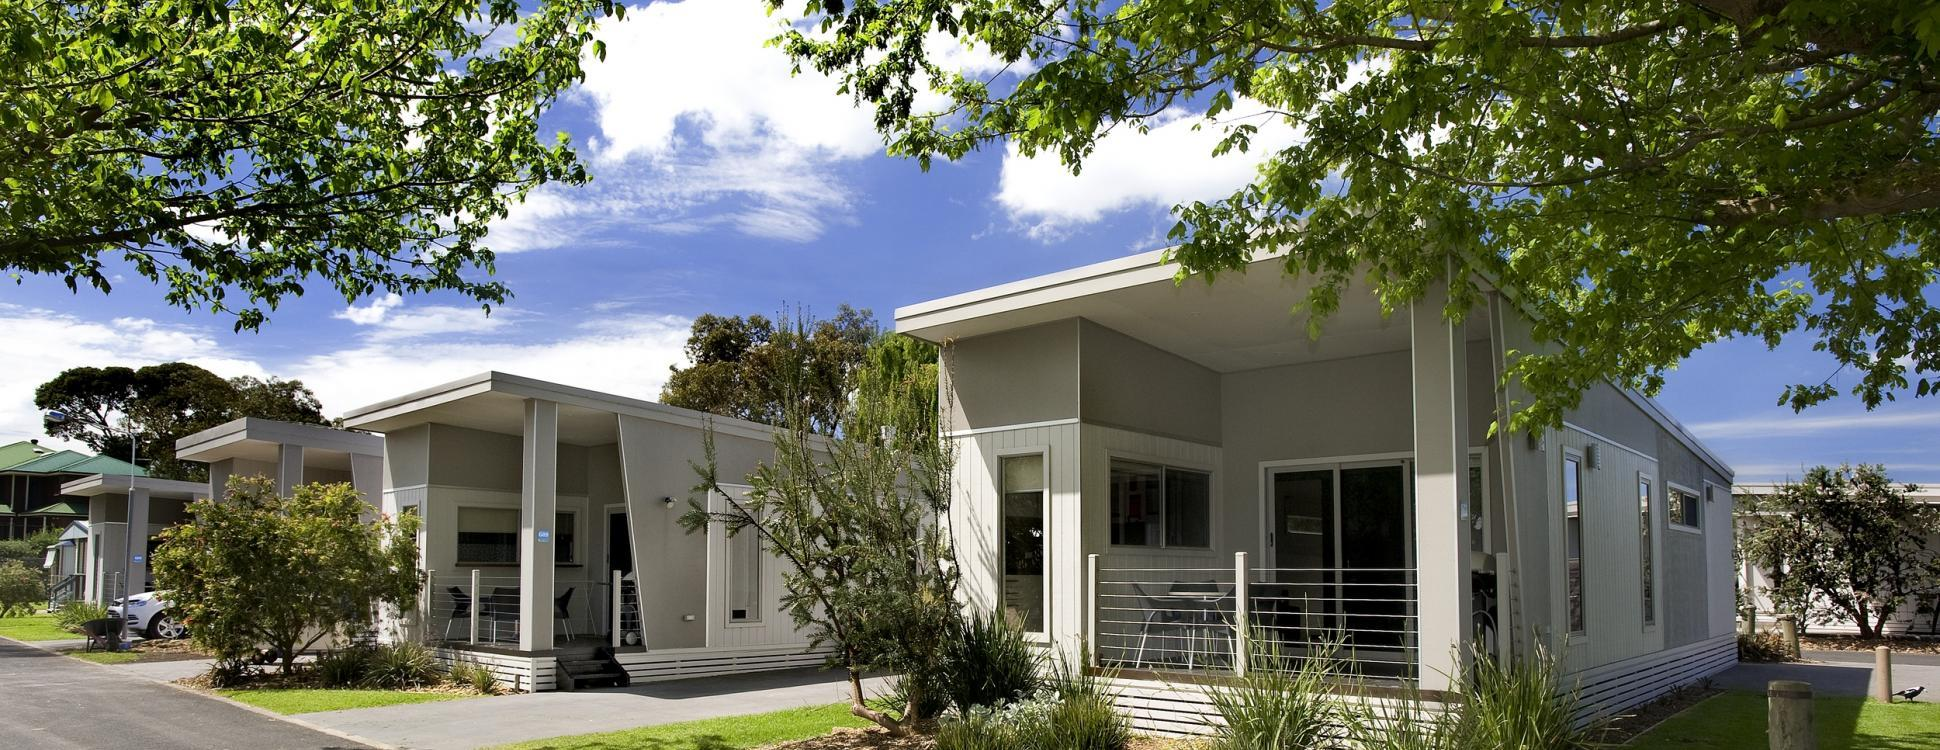 Exterior of two bedroom villa accommodation at BIG4 Beacon Resort in Queenscliff